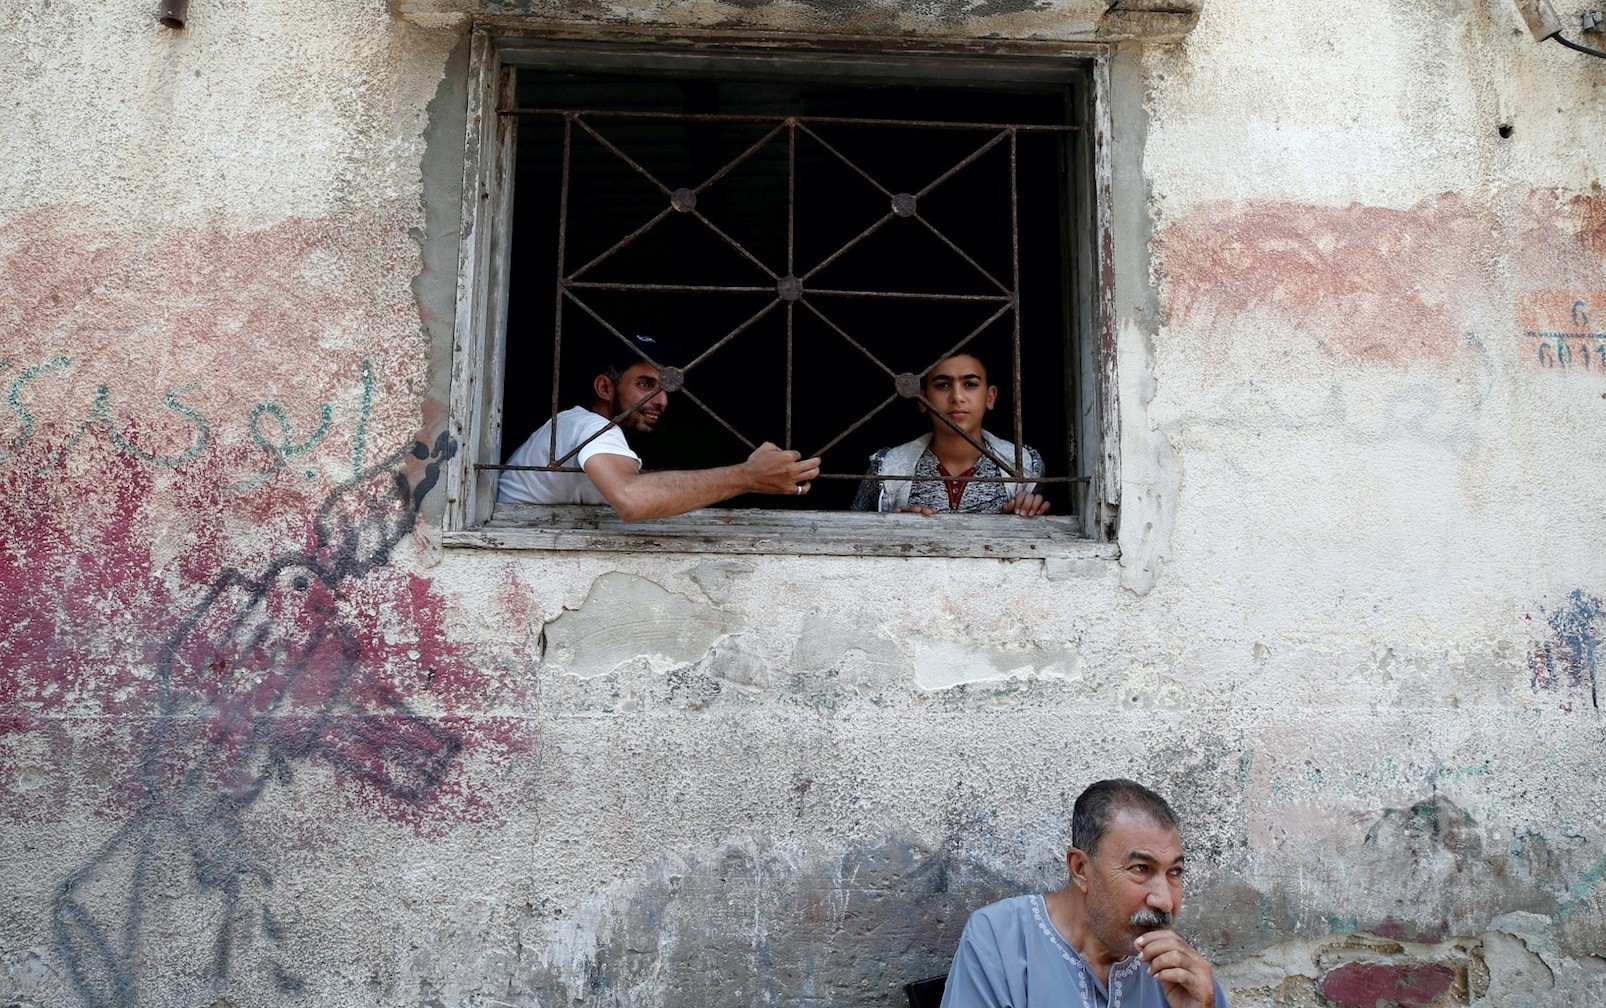 Palestinians look out of the window of their home at the Al-Shati refugee camp, Gaza City, Sept. 3.